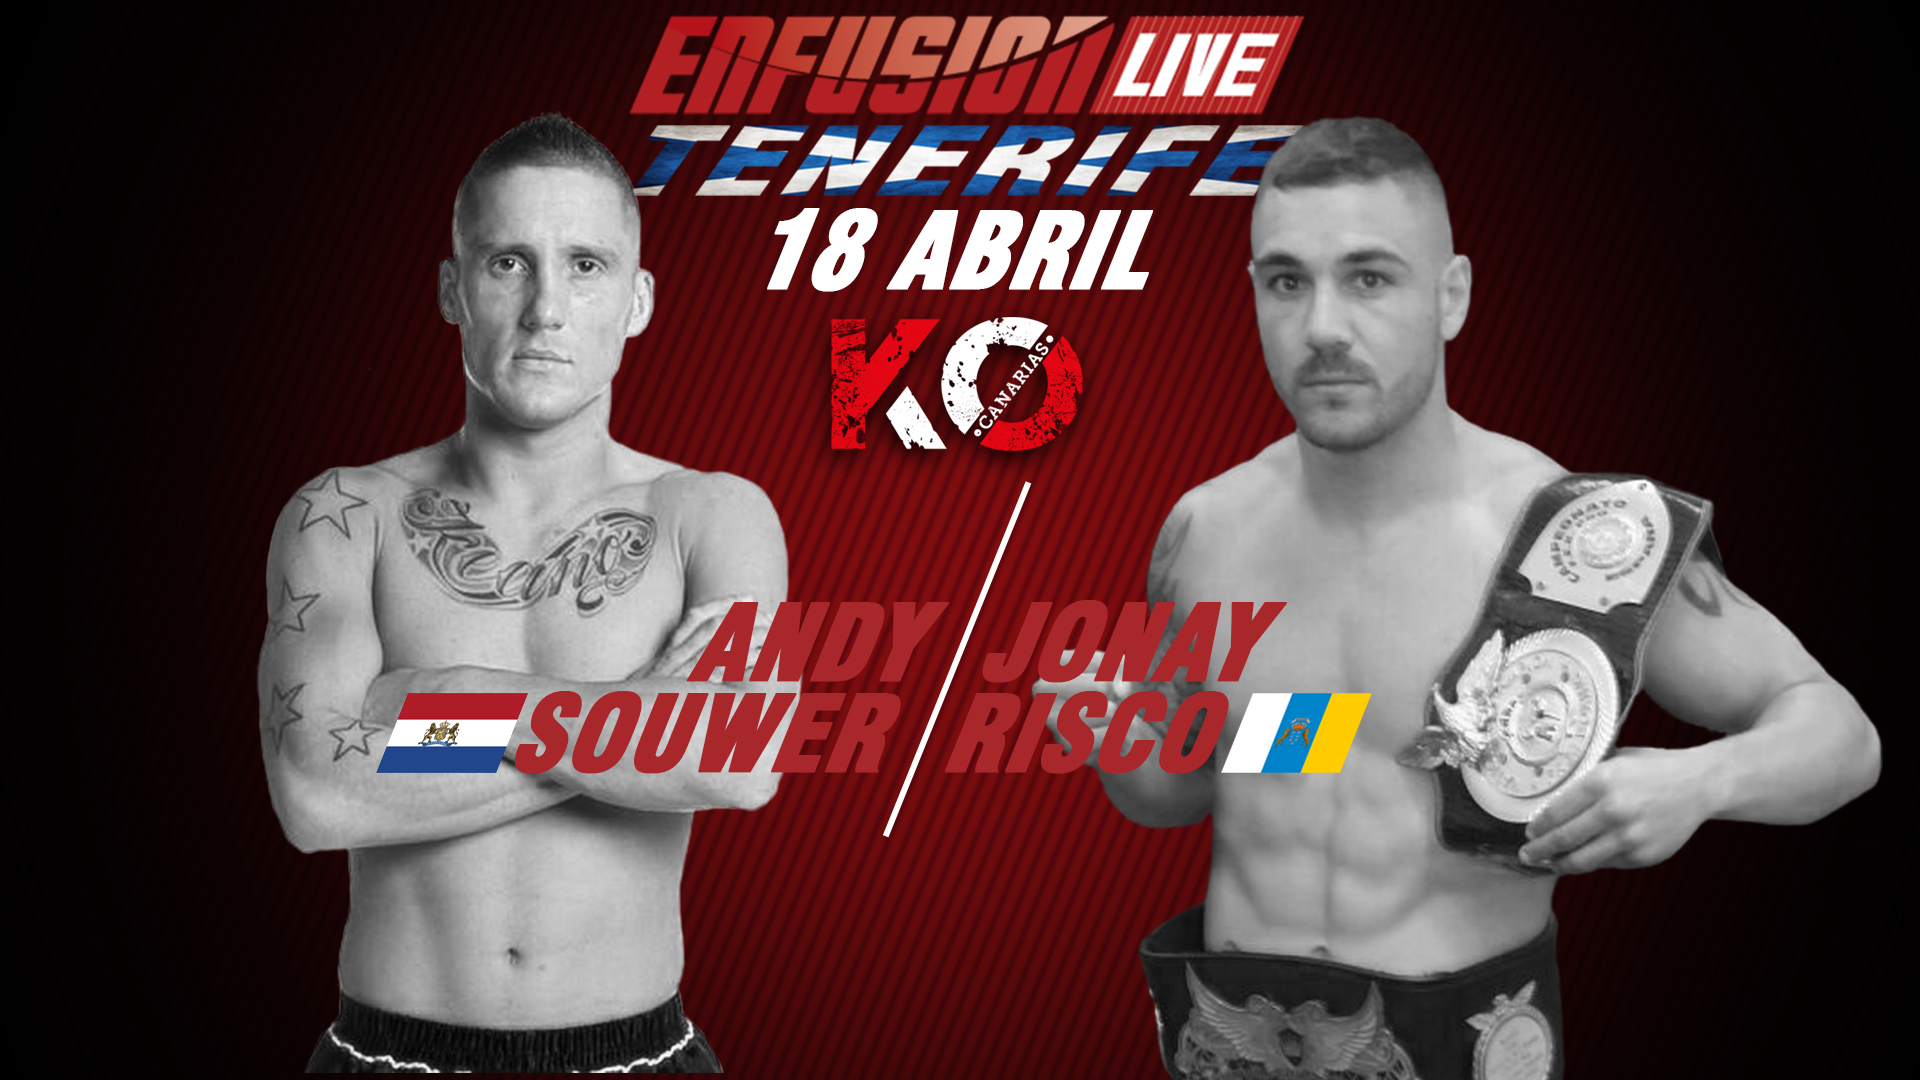 jonay risco vs andy souwer 2